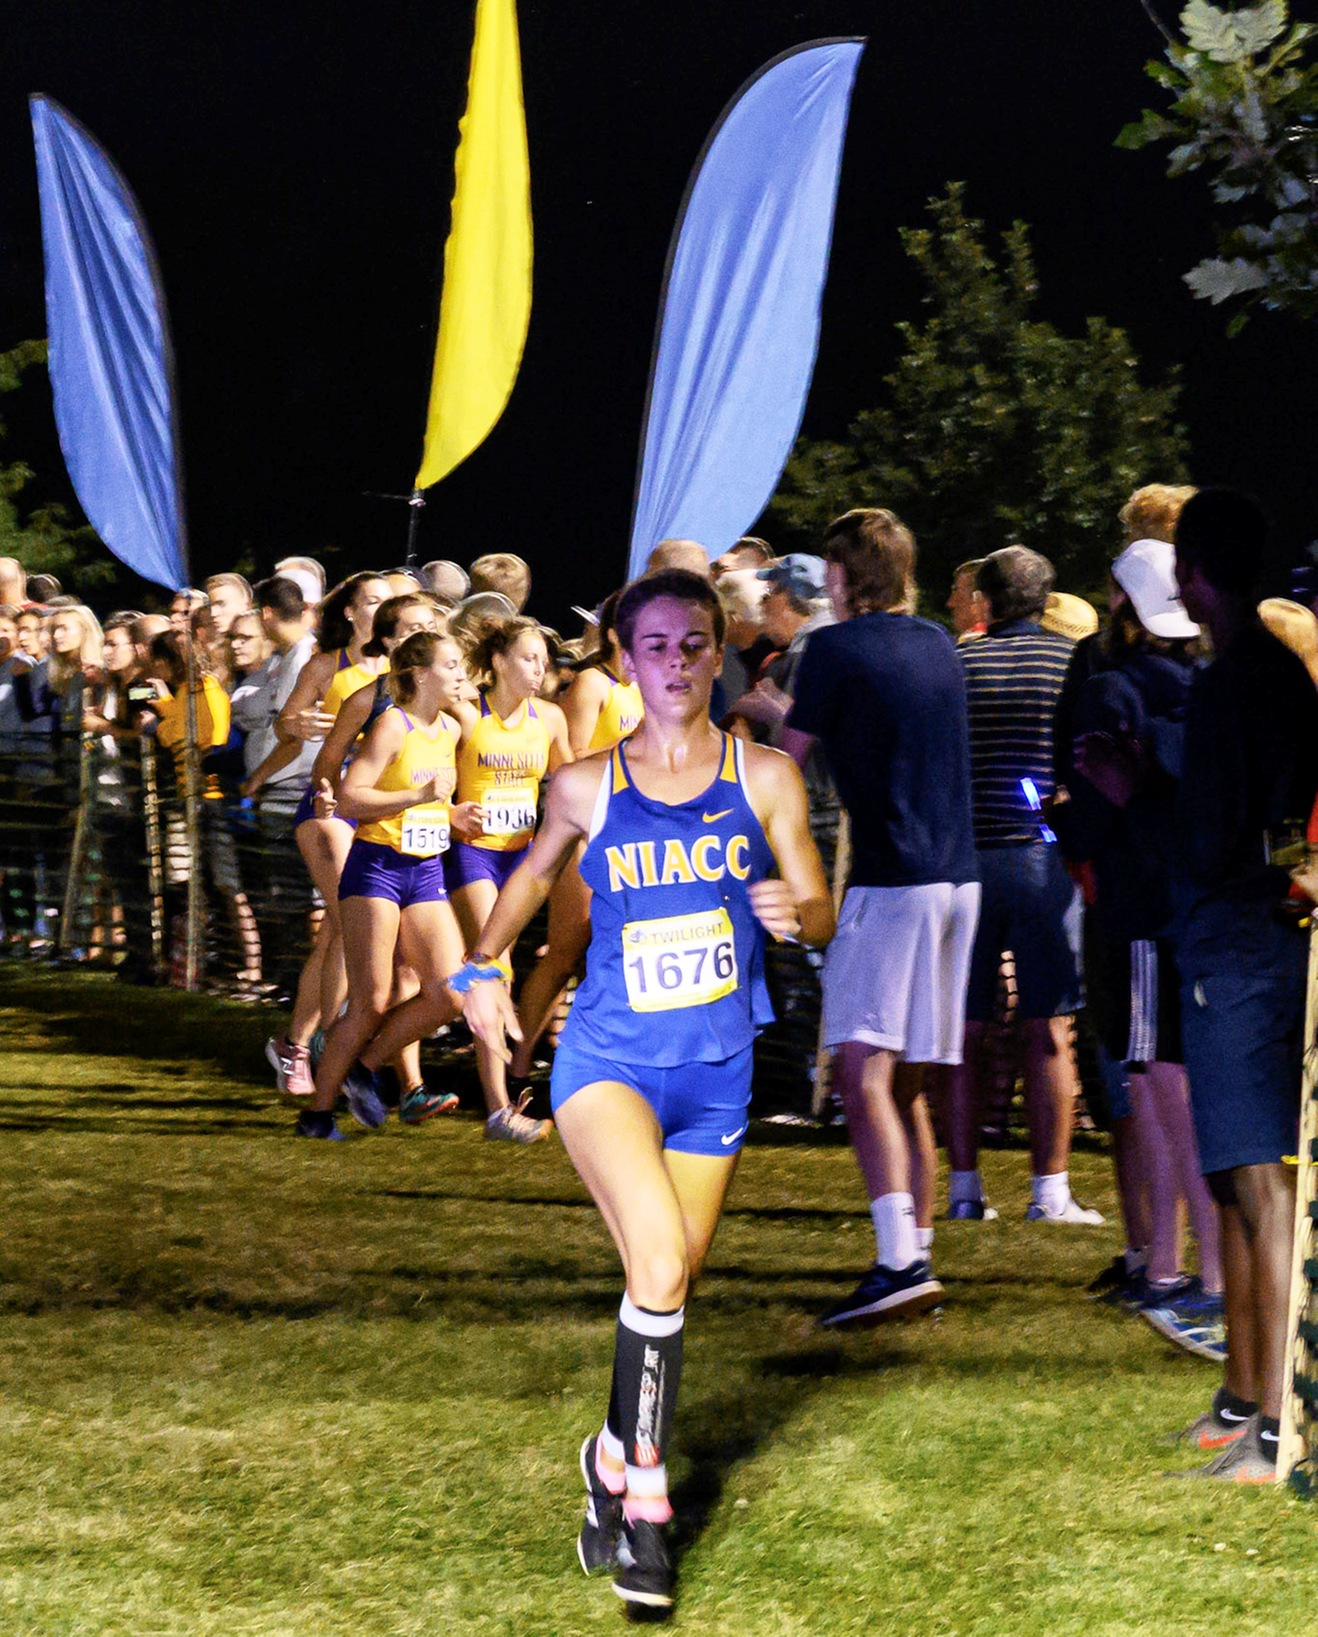 NIACC's Paula Jimenez runs at the Augustana Twilight on Friday.